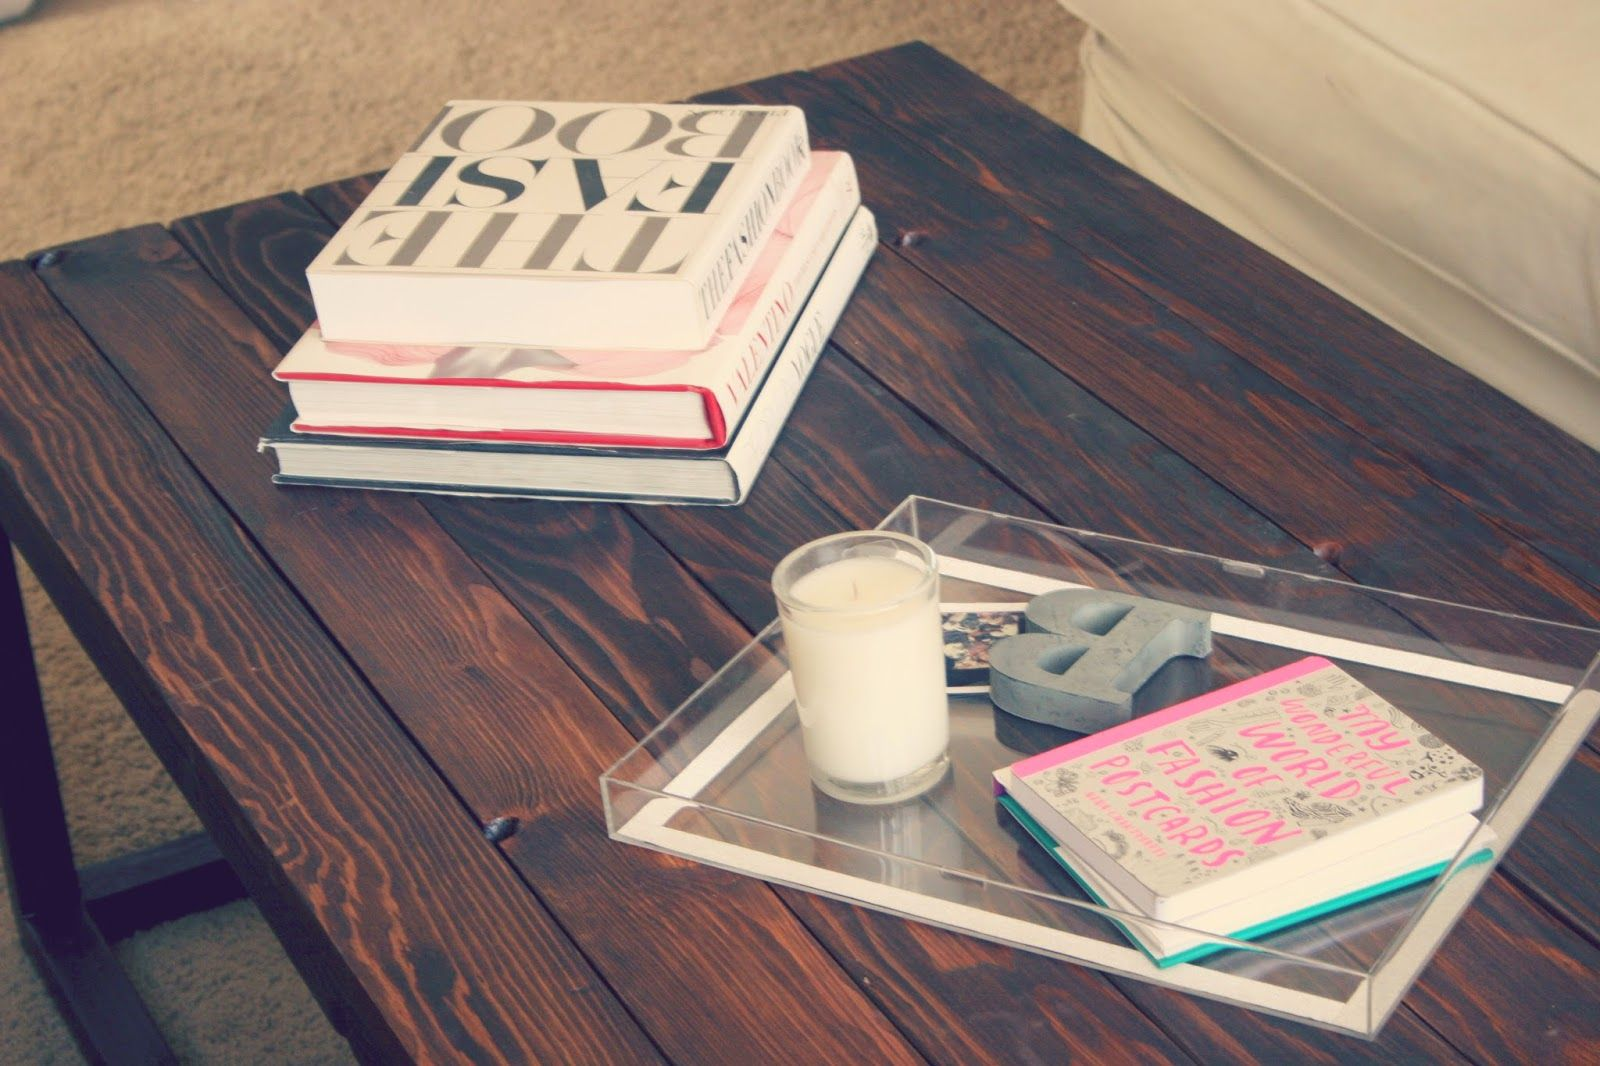 Just a Darling Life: DIY Clear Lucite Tray - West Elm and Anthropologie Hack!